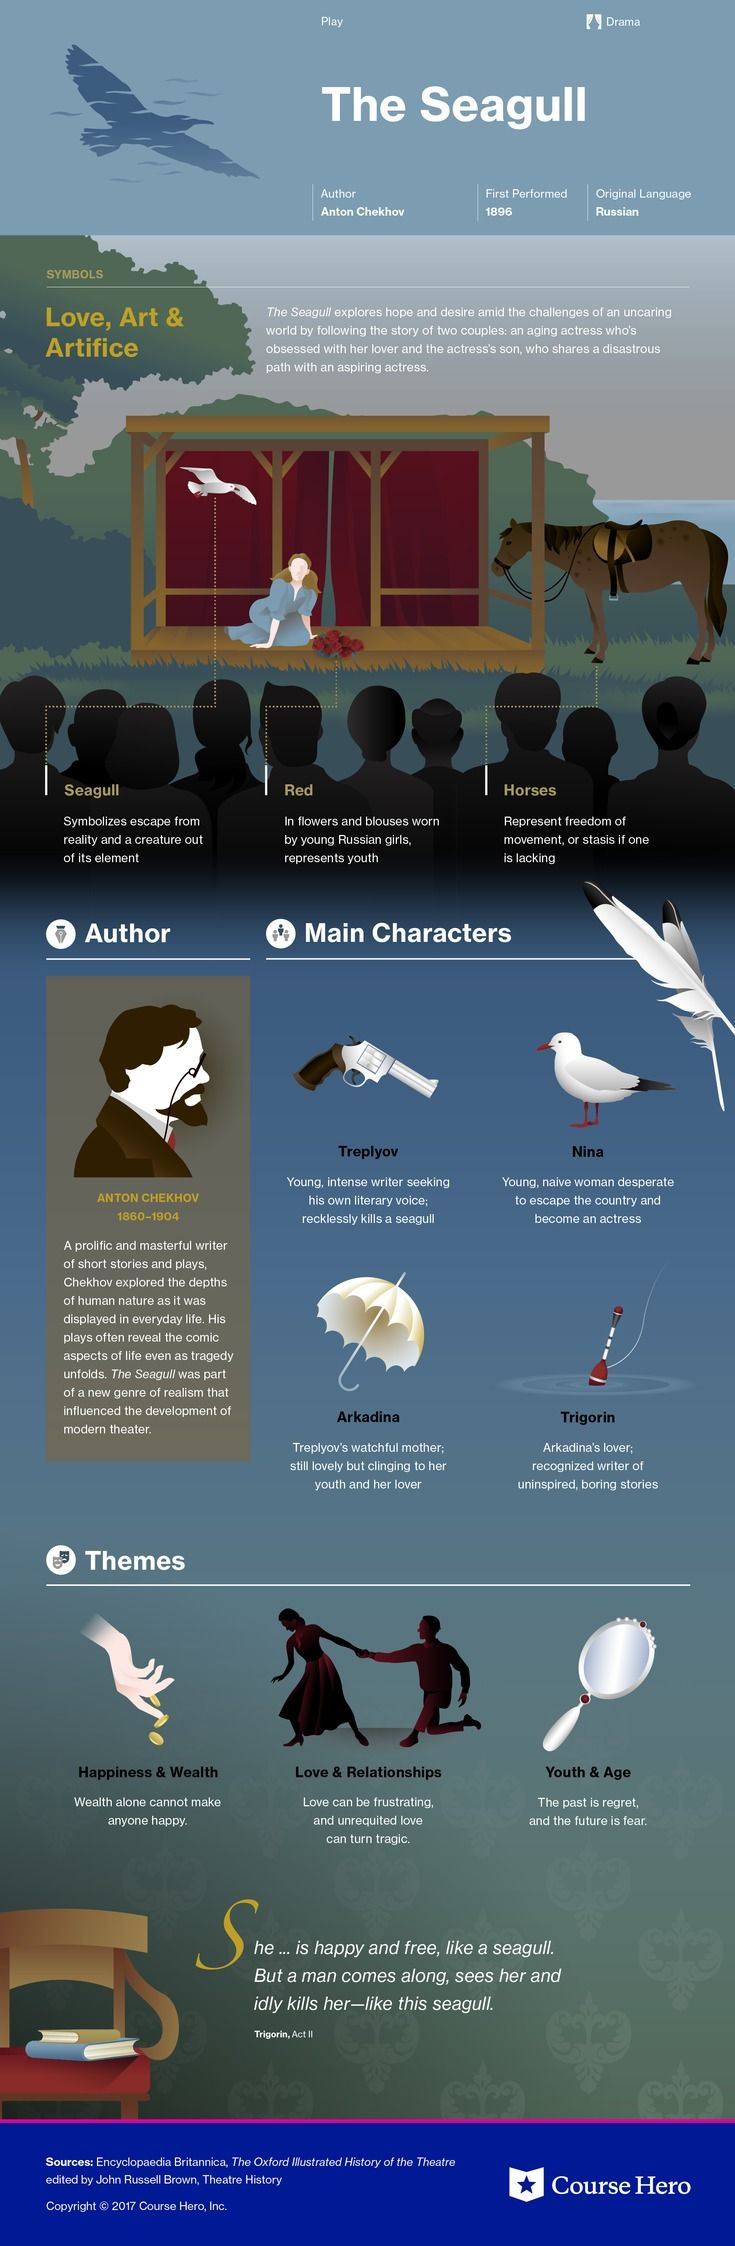 This @CourseHero infographic on The Seagull is both visually stunning and informative!